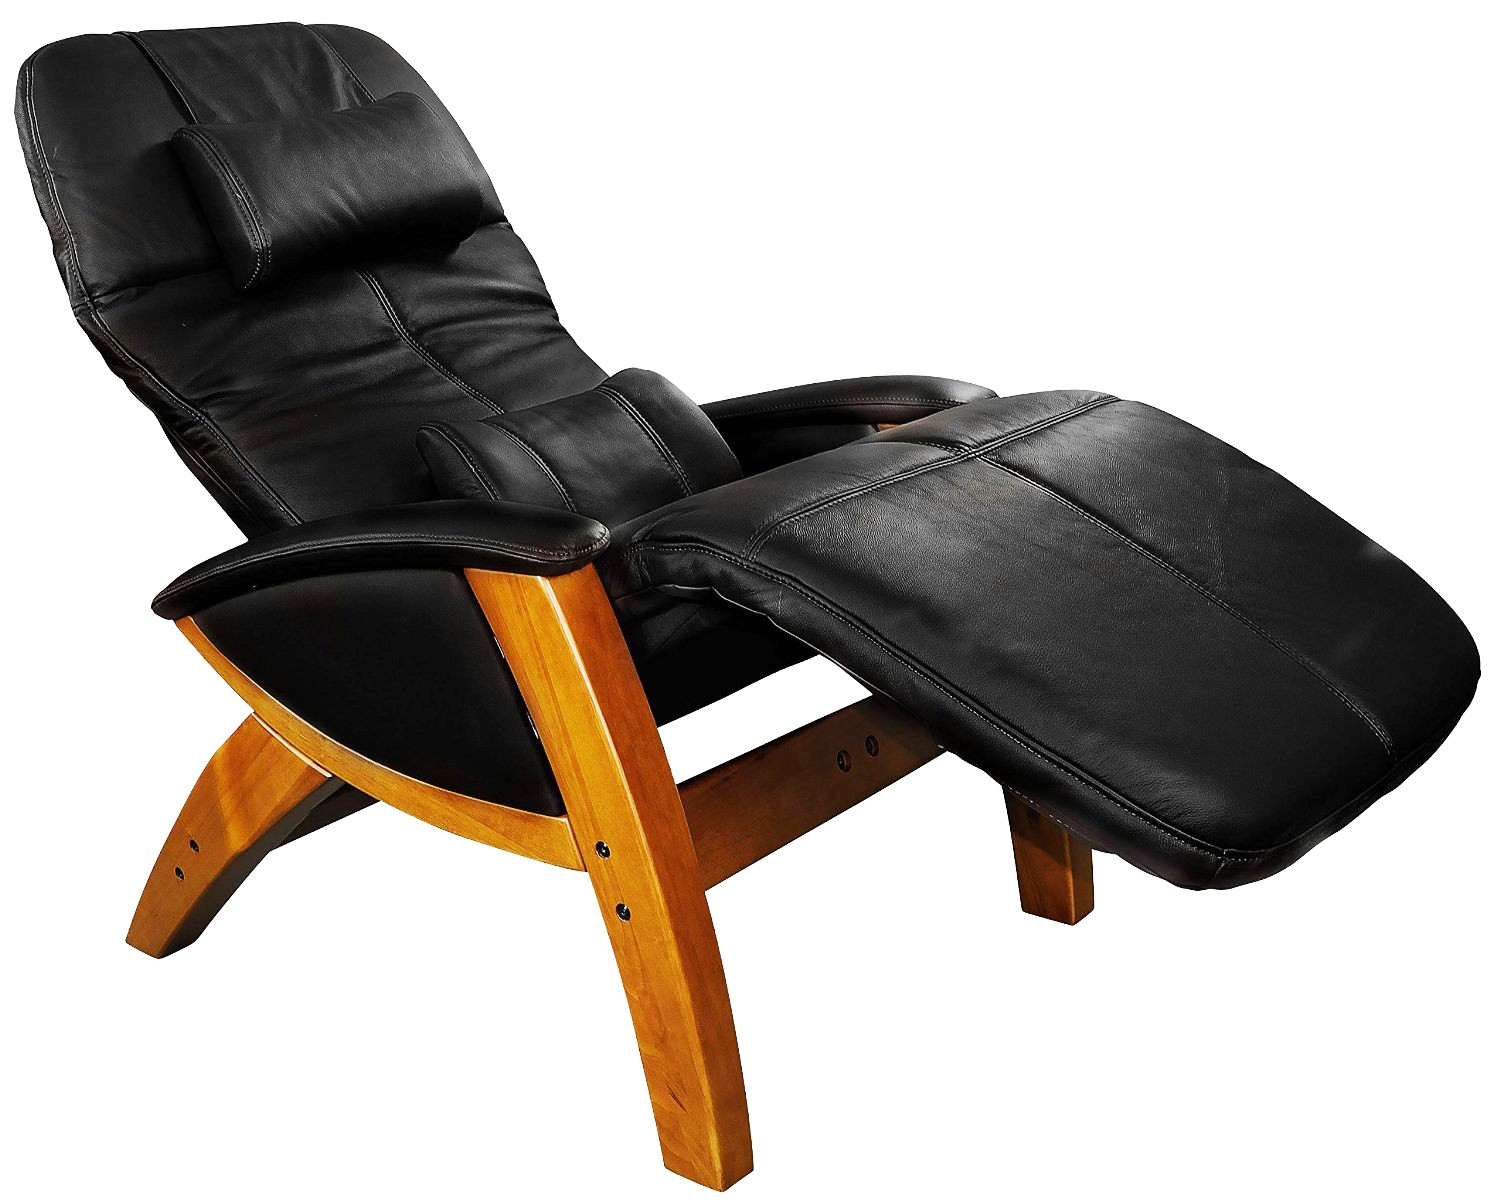 Svago Chair Svago Sv410 Benessere Zero Gravity Recliner Chairs